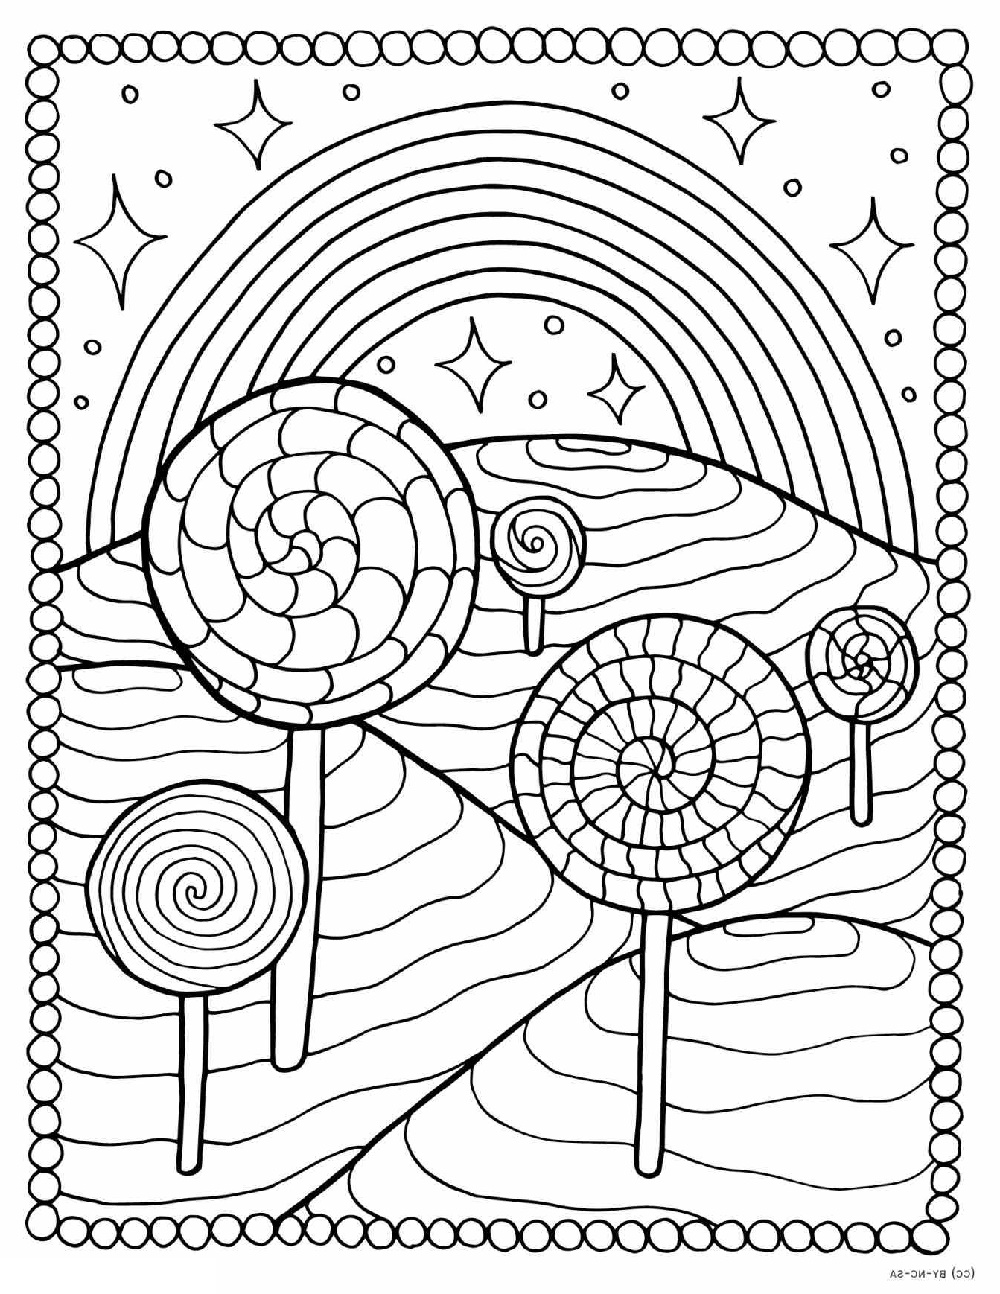 Lollipop Coloring Page To Print